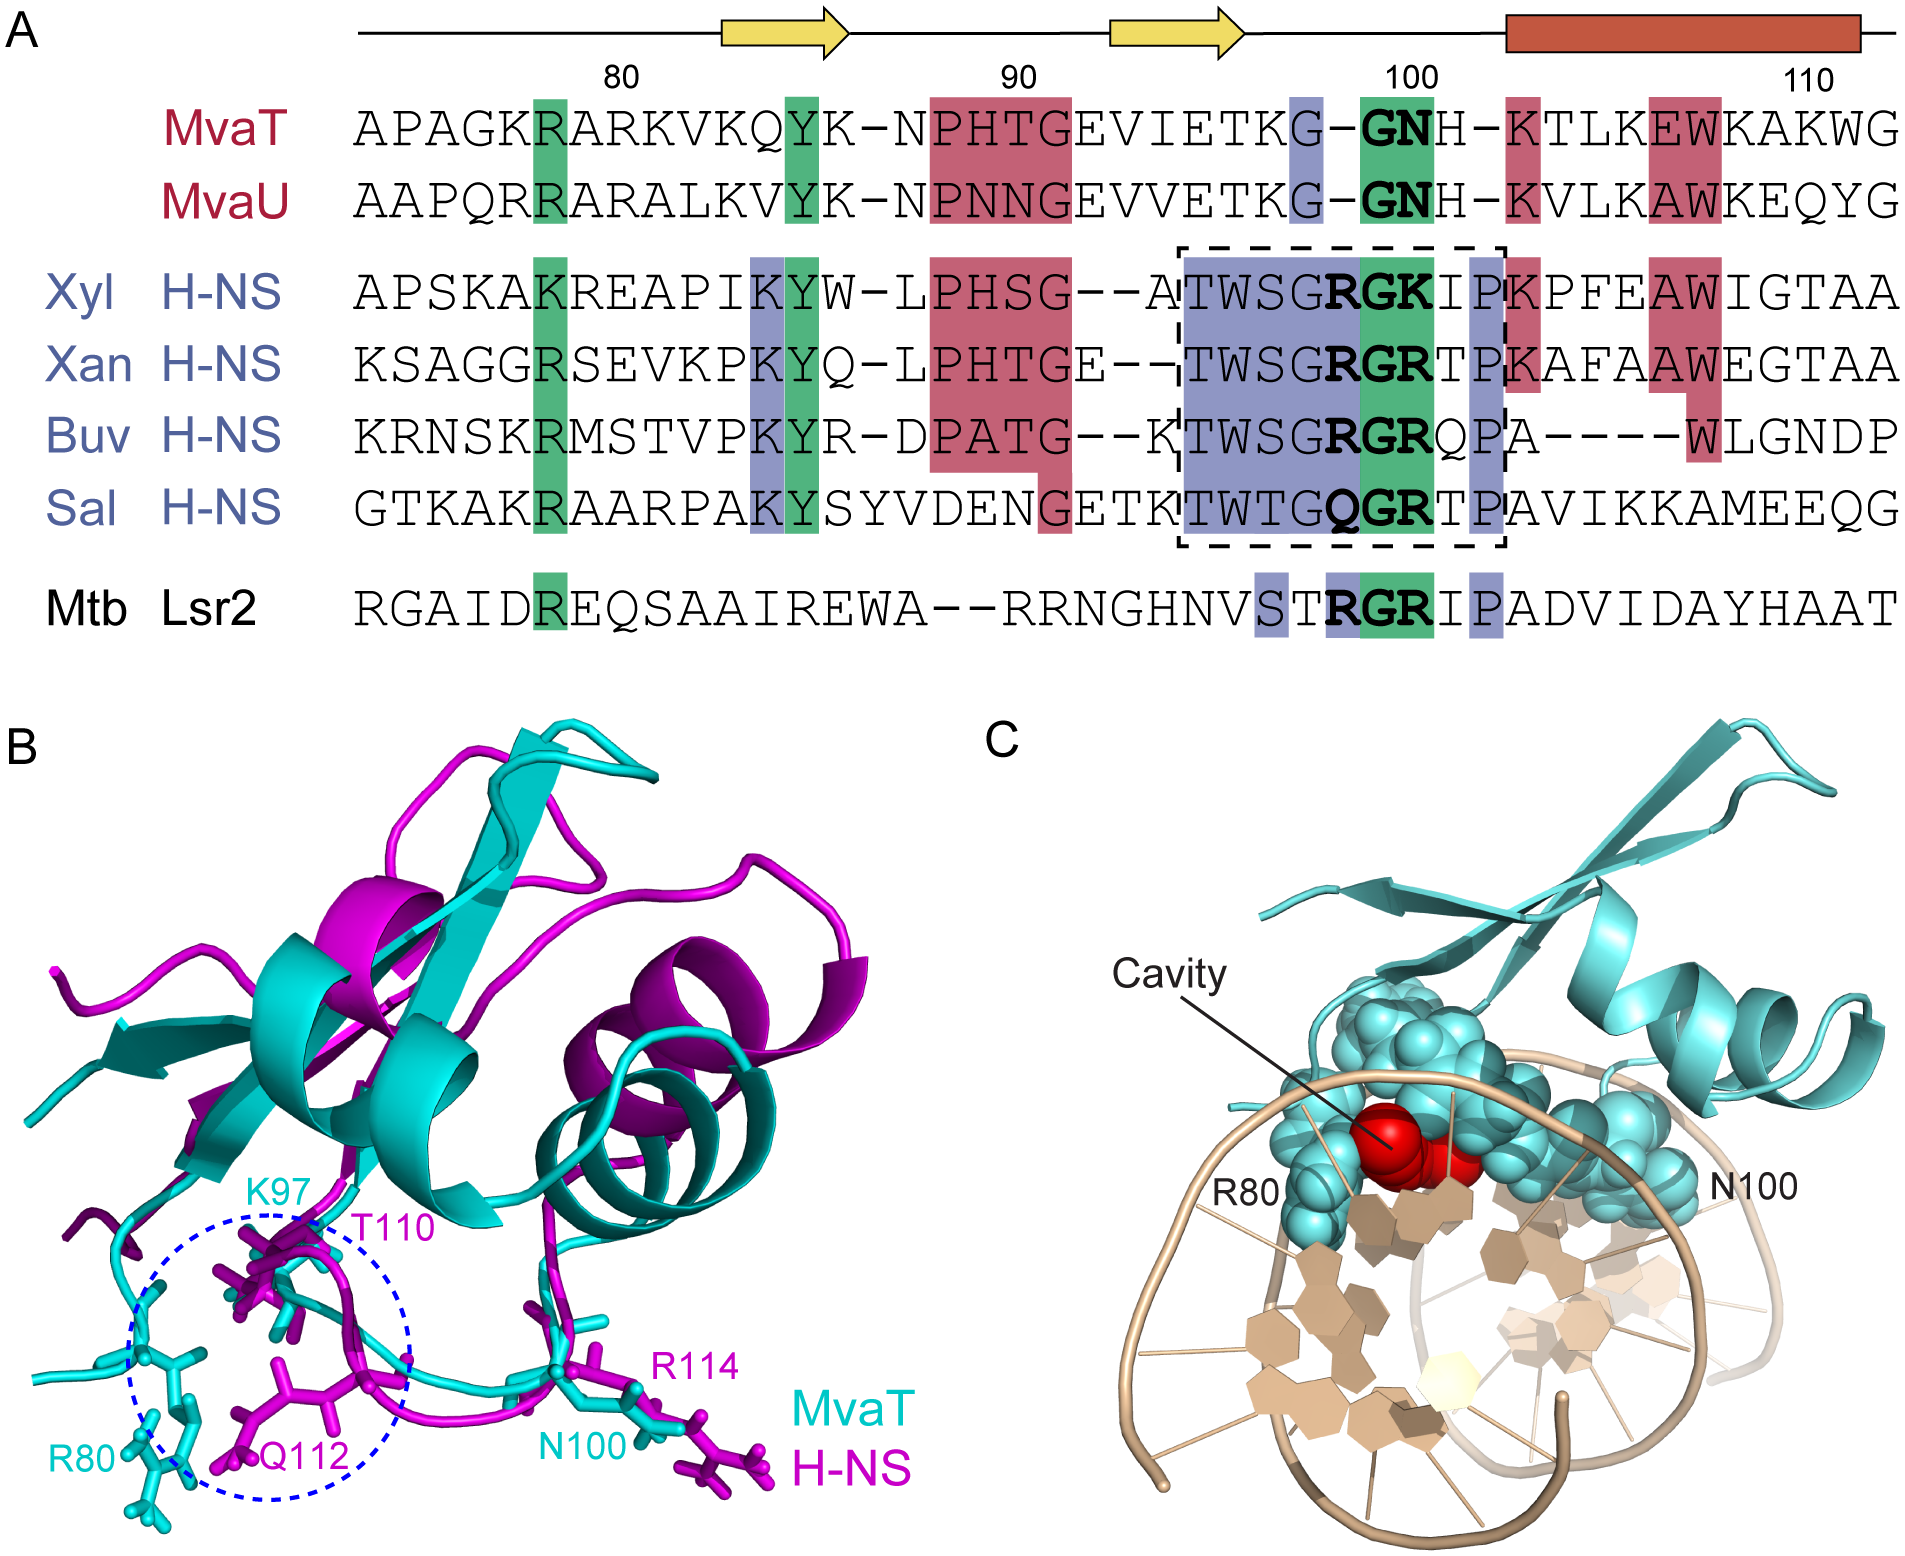 Sequence alignments and structural comparisons of MvaT<sub>ctd</sub> with AT-hook-like motif containing DNA-binding domains.